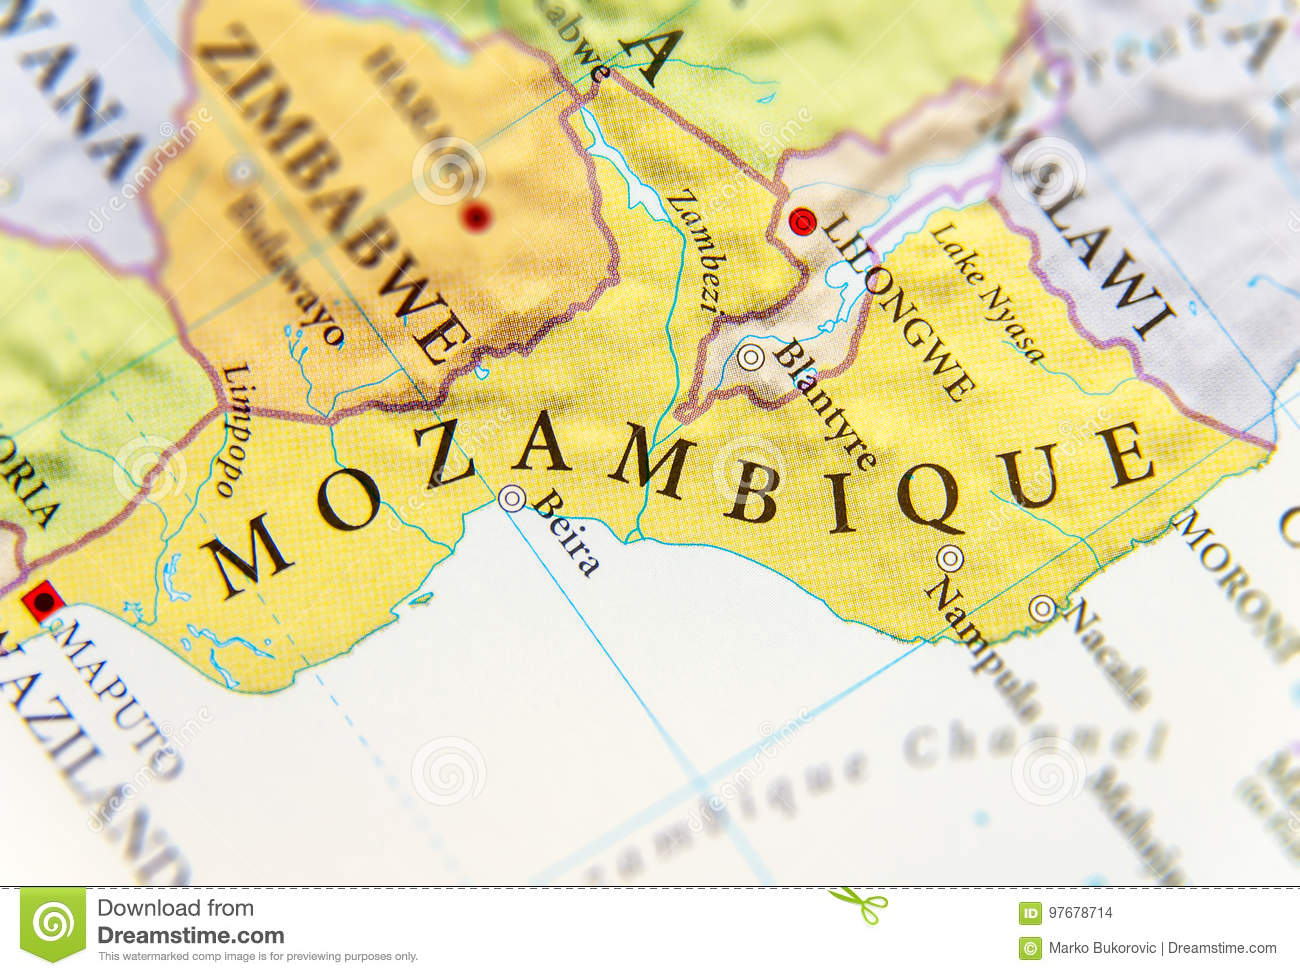 Geographic map of Mozambique with important cities